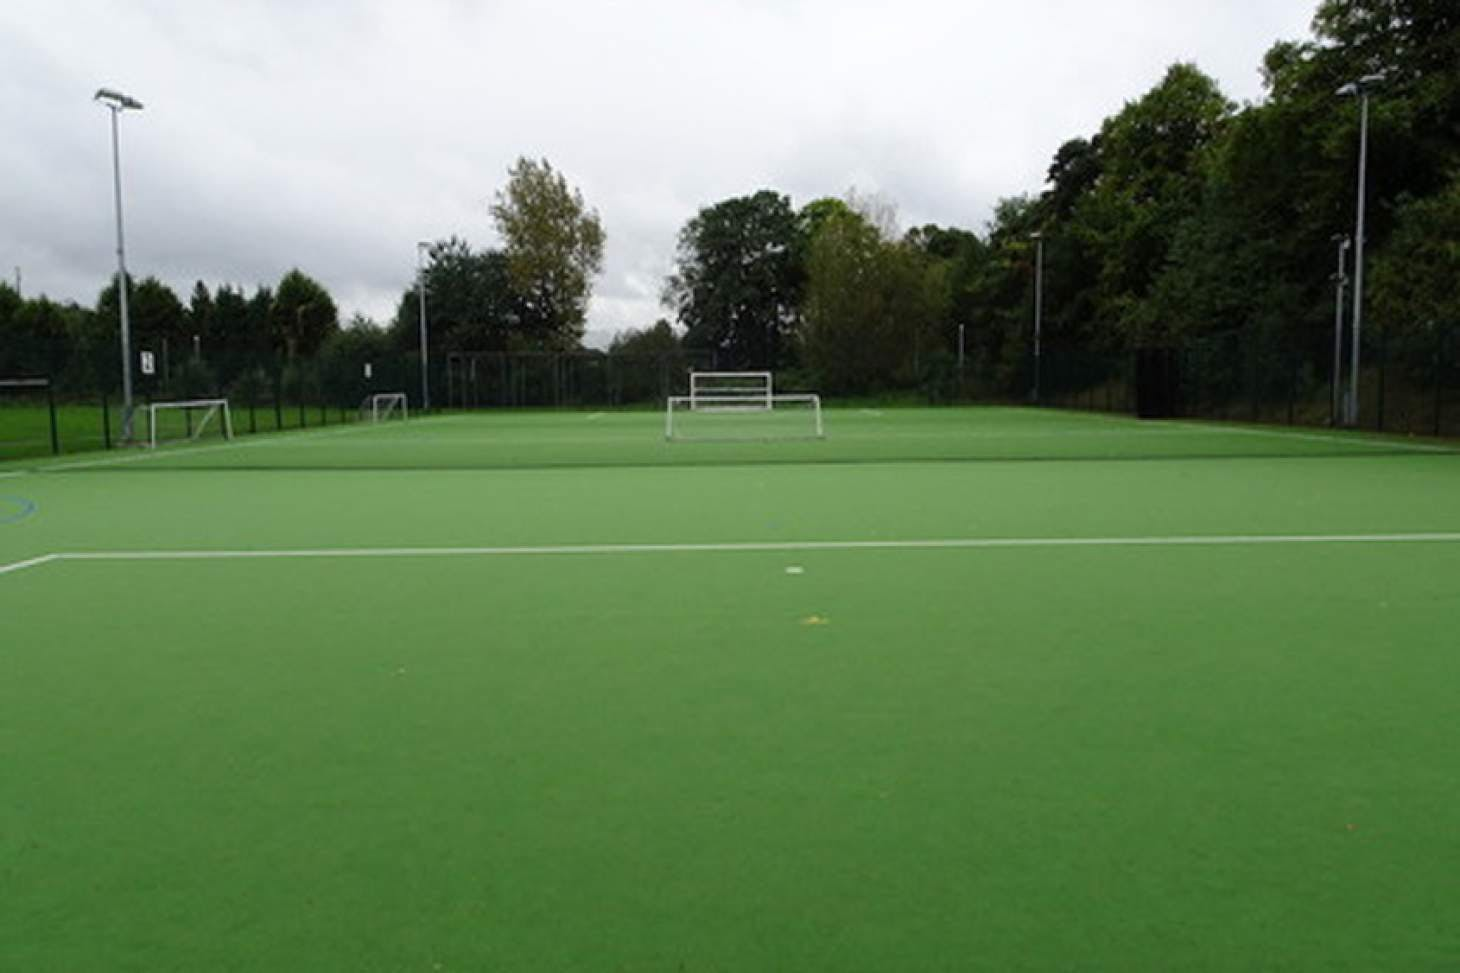 The Barlow RC High School Outdoor | Astroturf hockey pitch